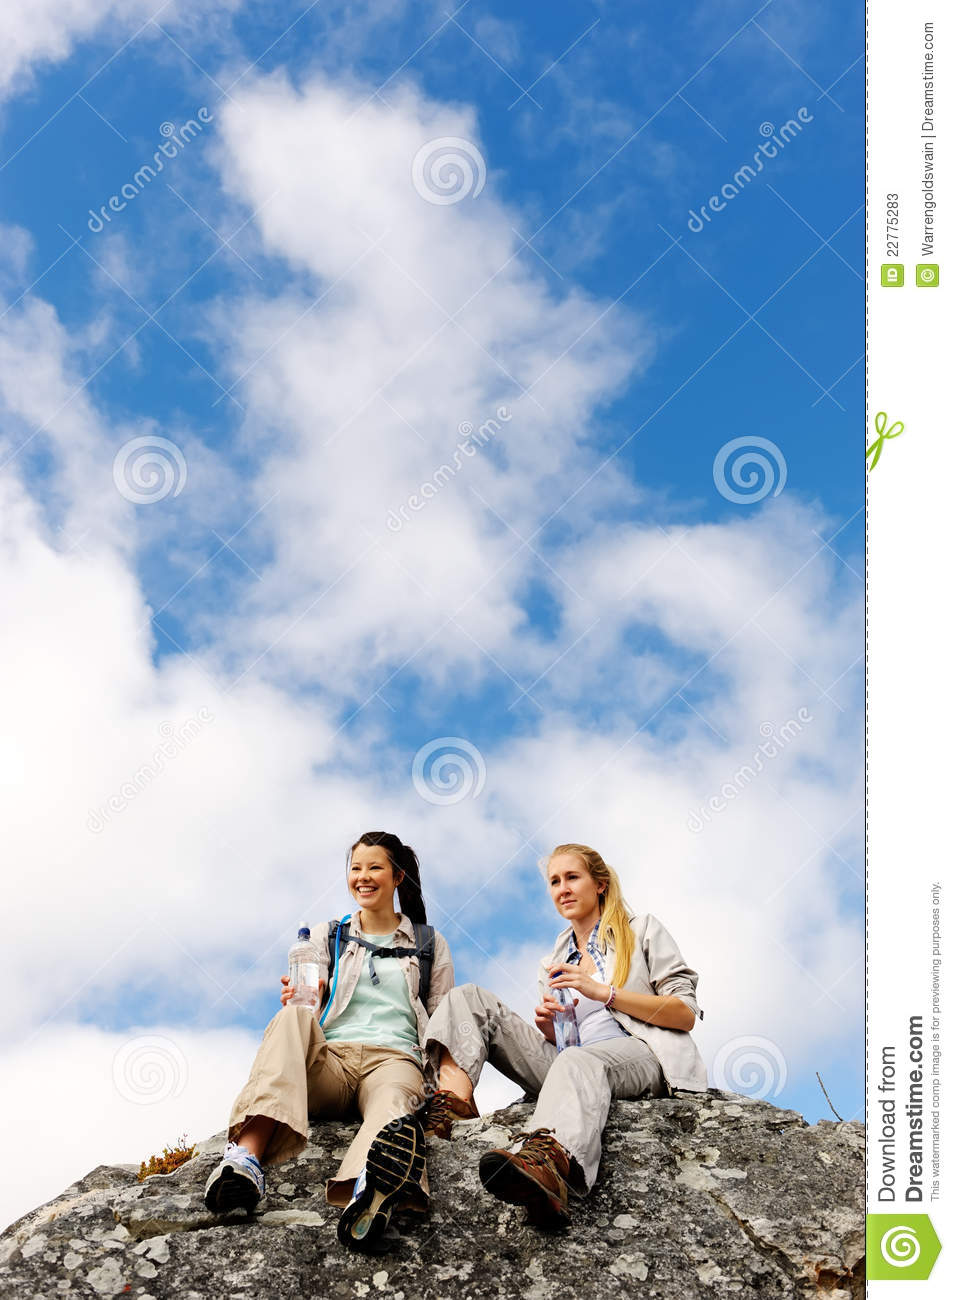 Two young hikers in the great outdoors